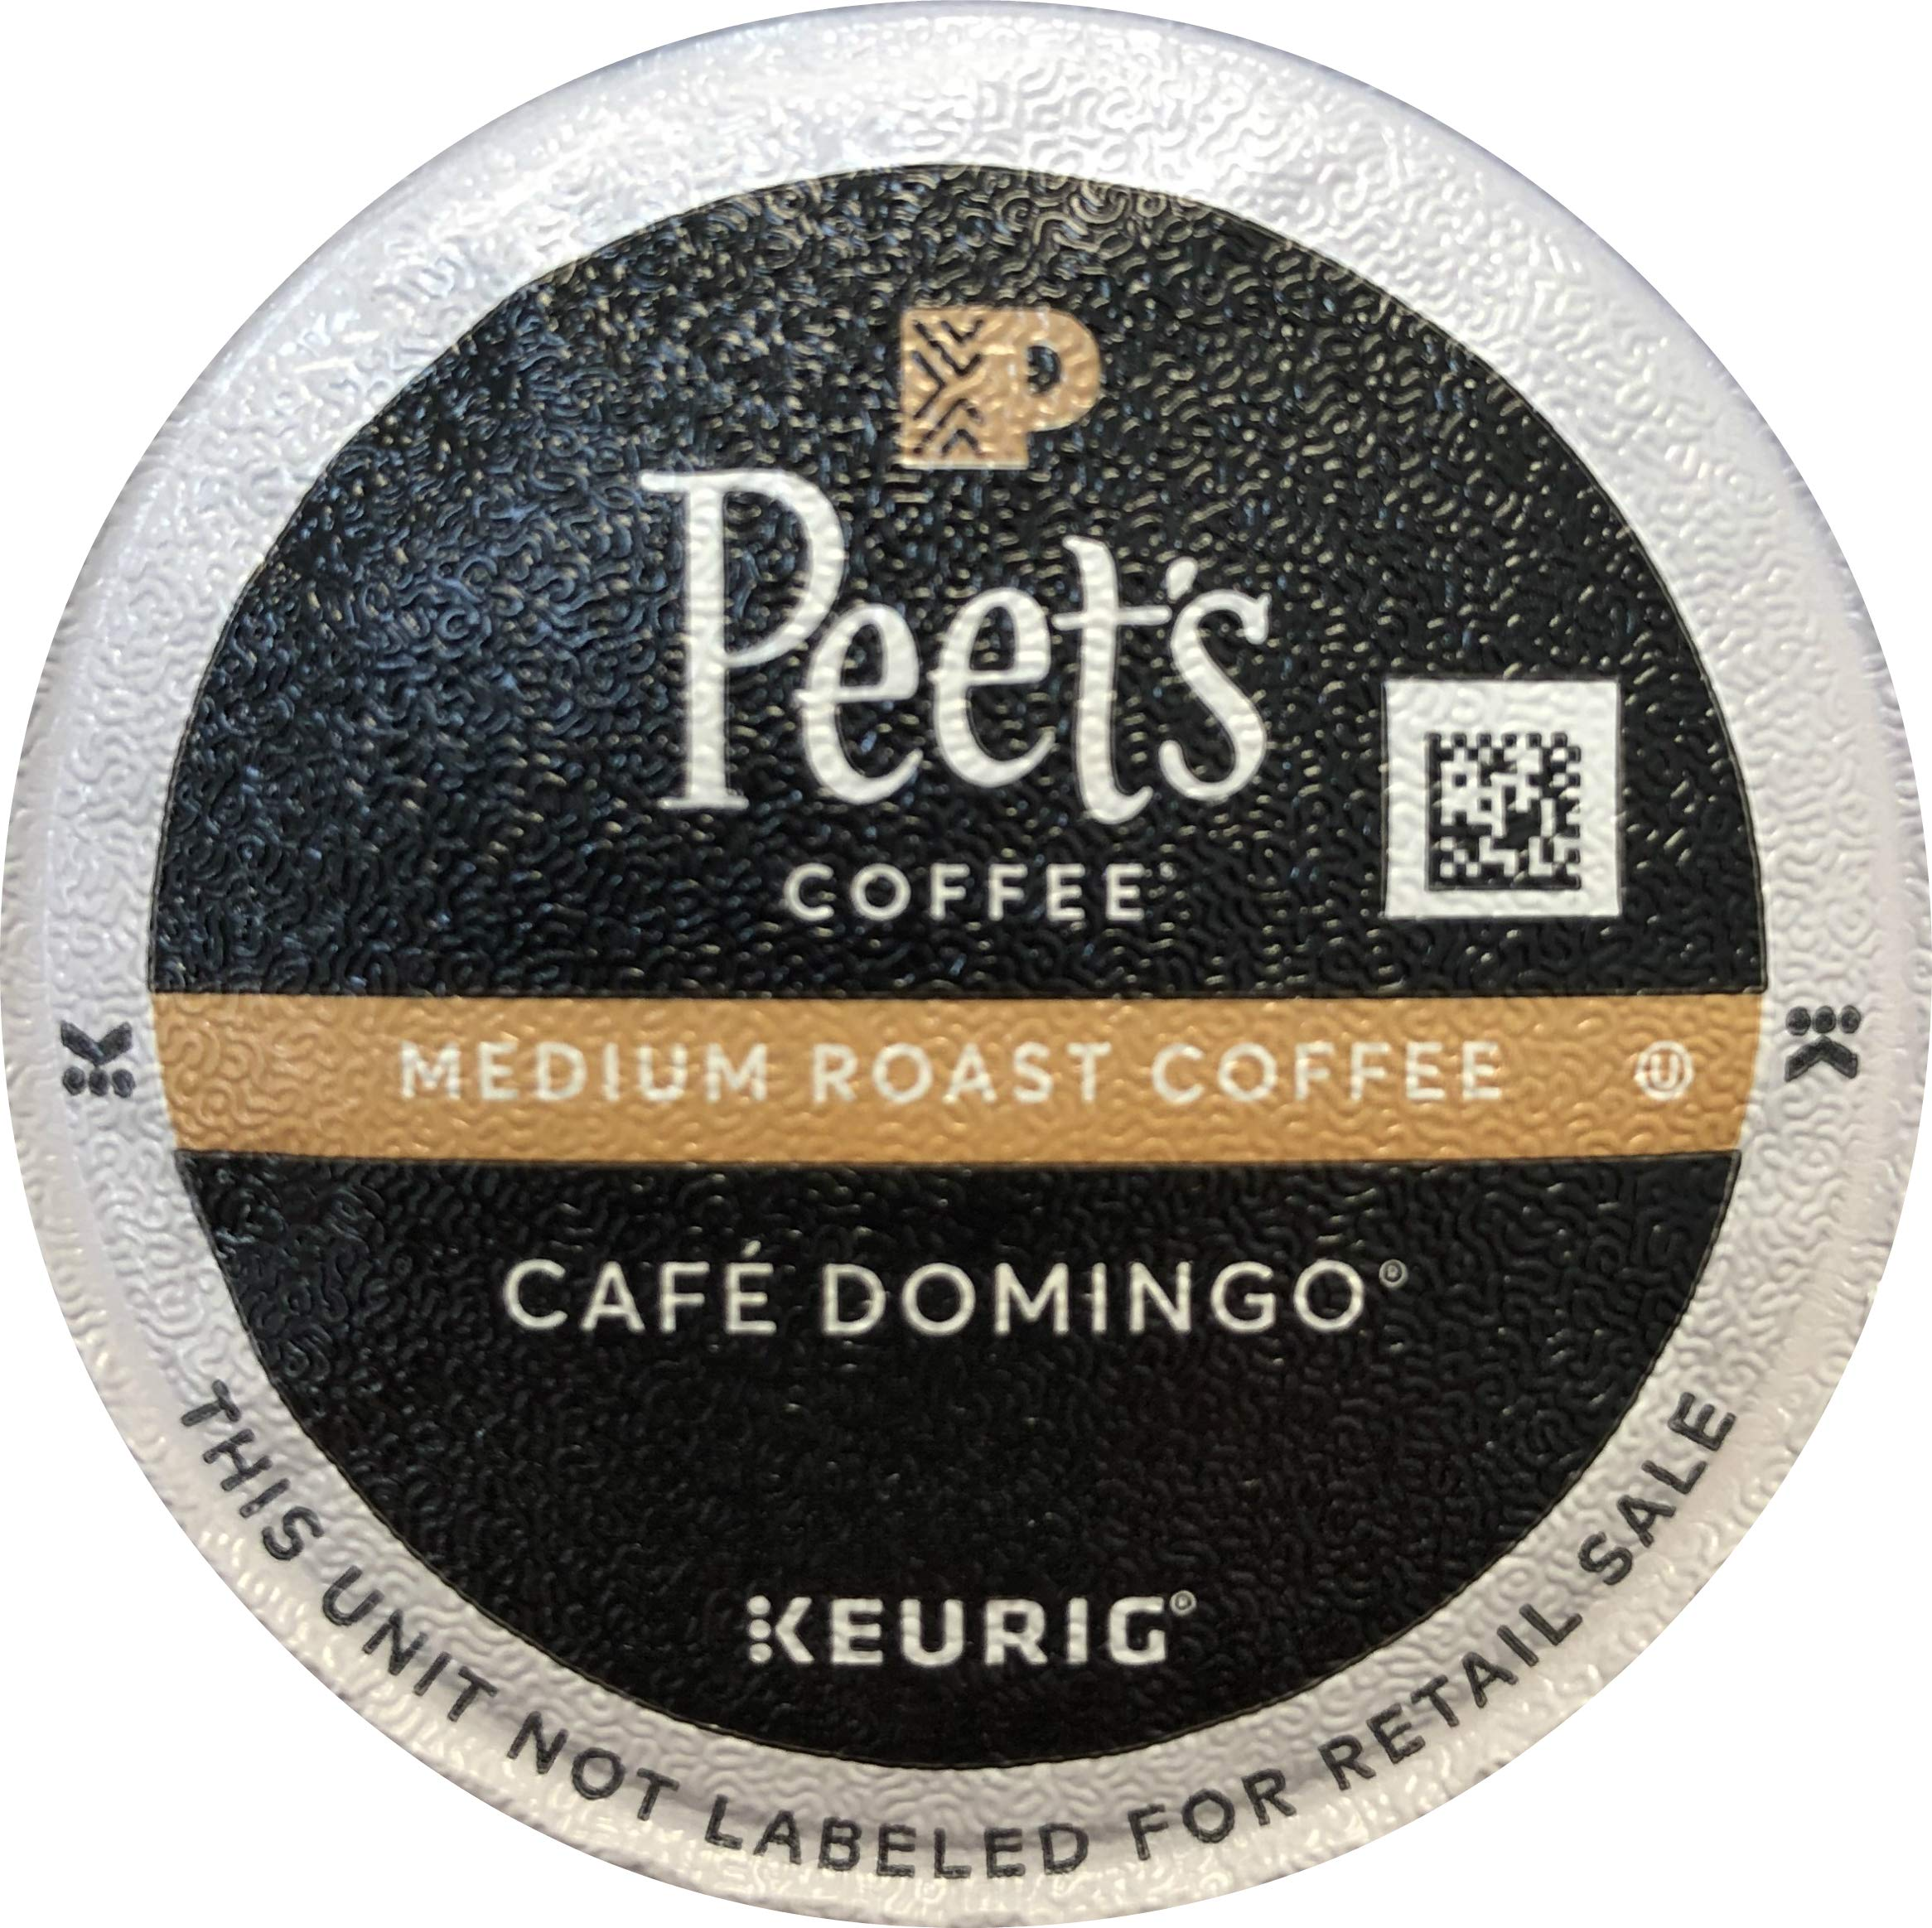 Peet's Coffee Cafe Domingo Single Cup Capsule (96 Count) by Peet's Coffee